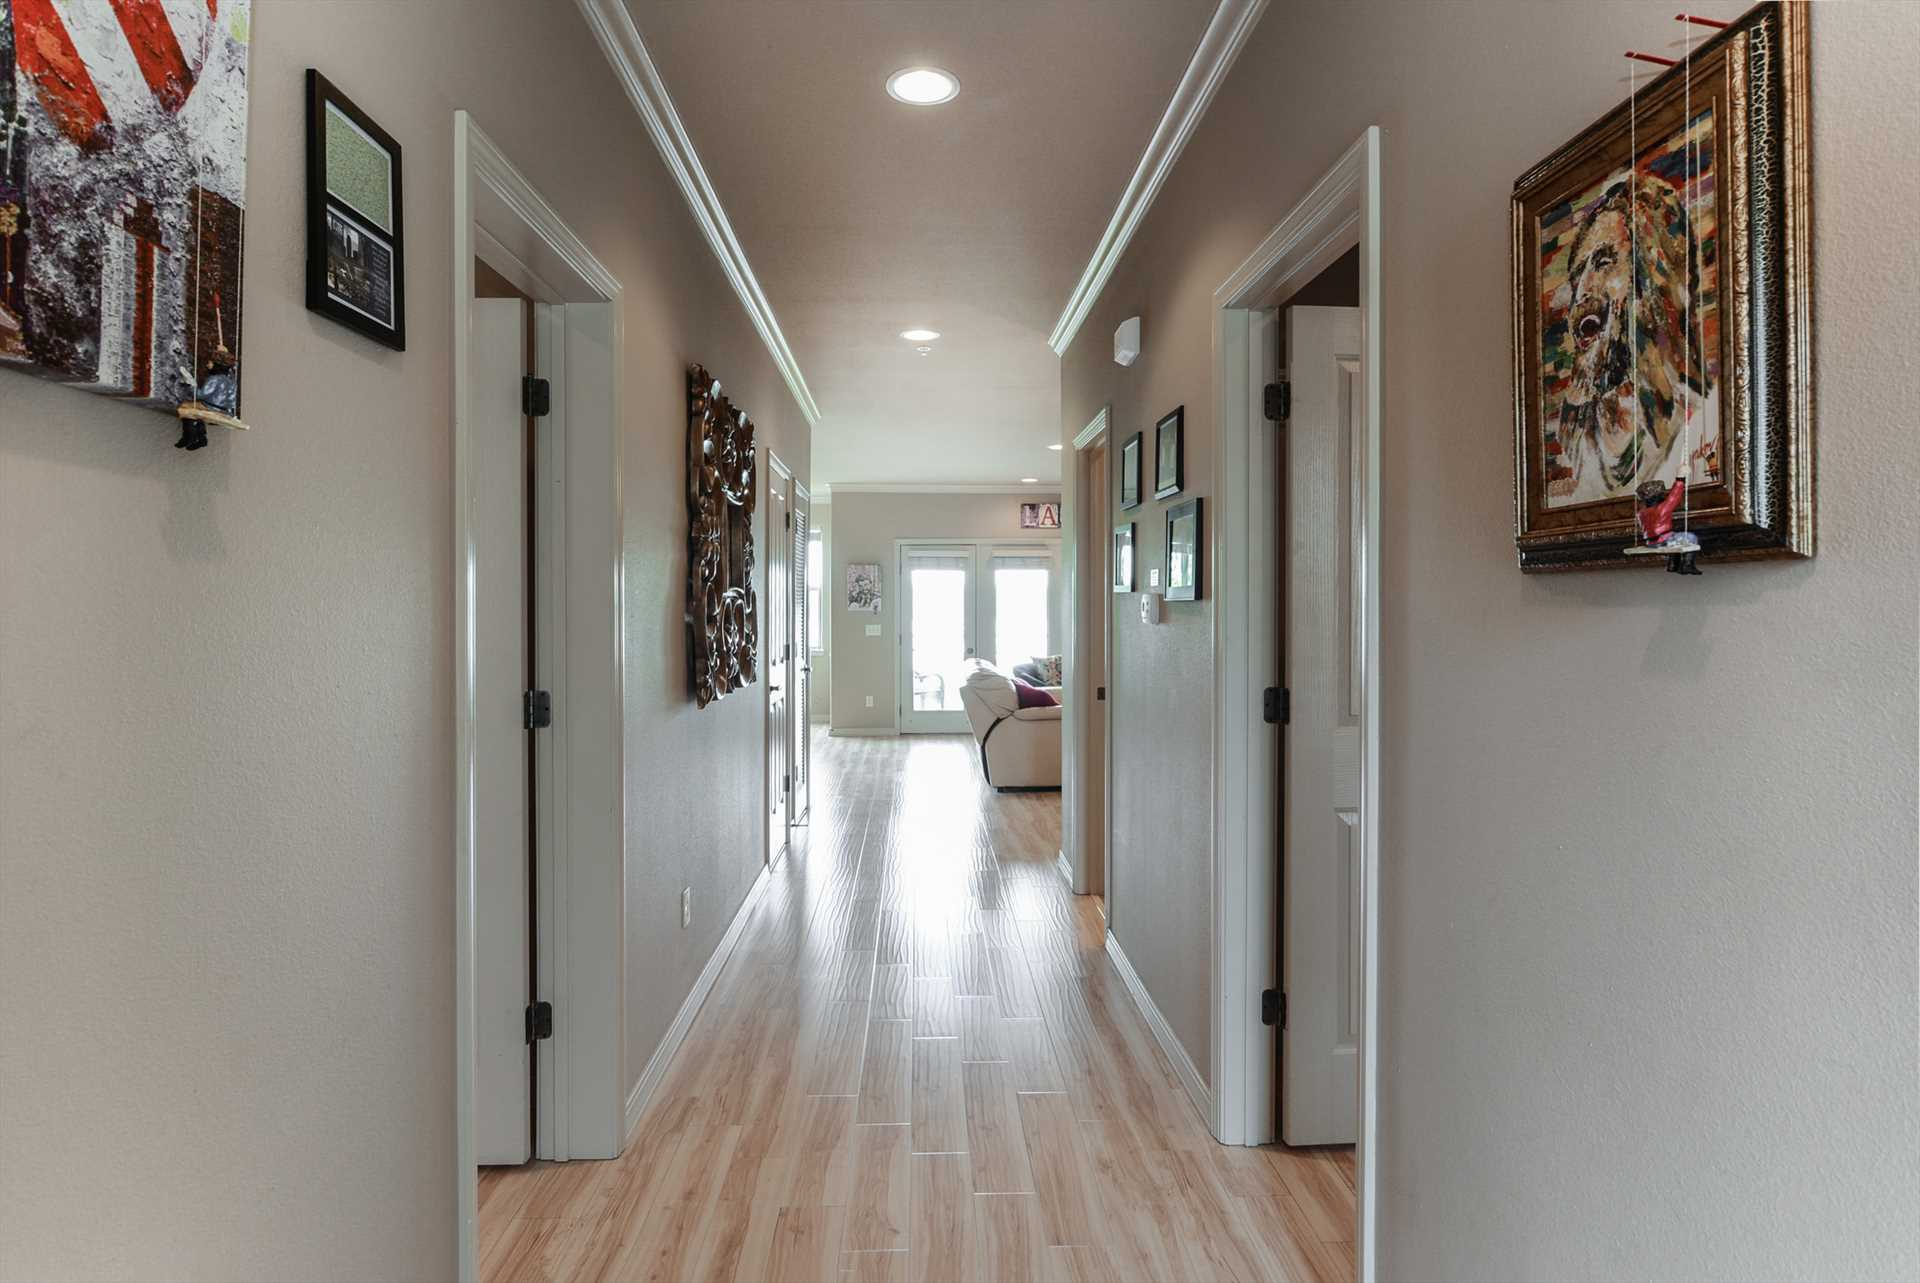 Hallway leads to large living area with adjacent fully-equip